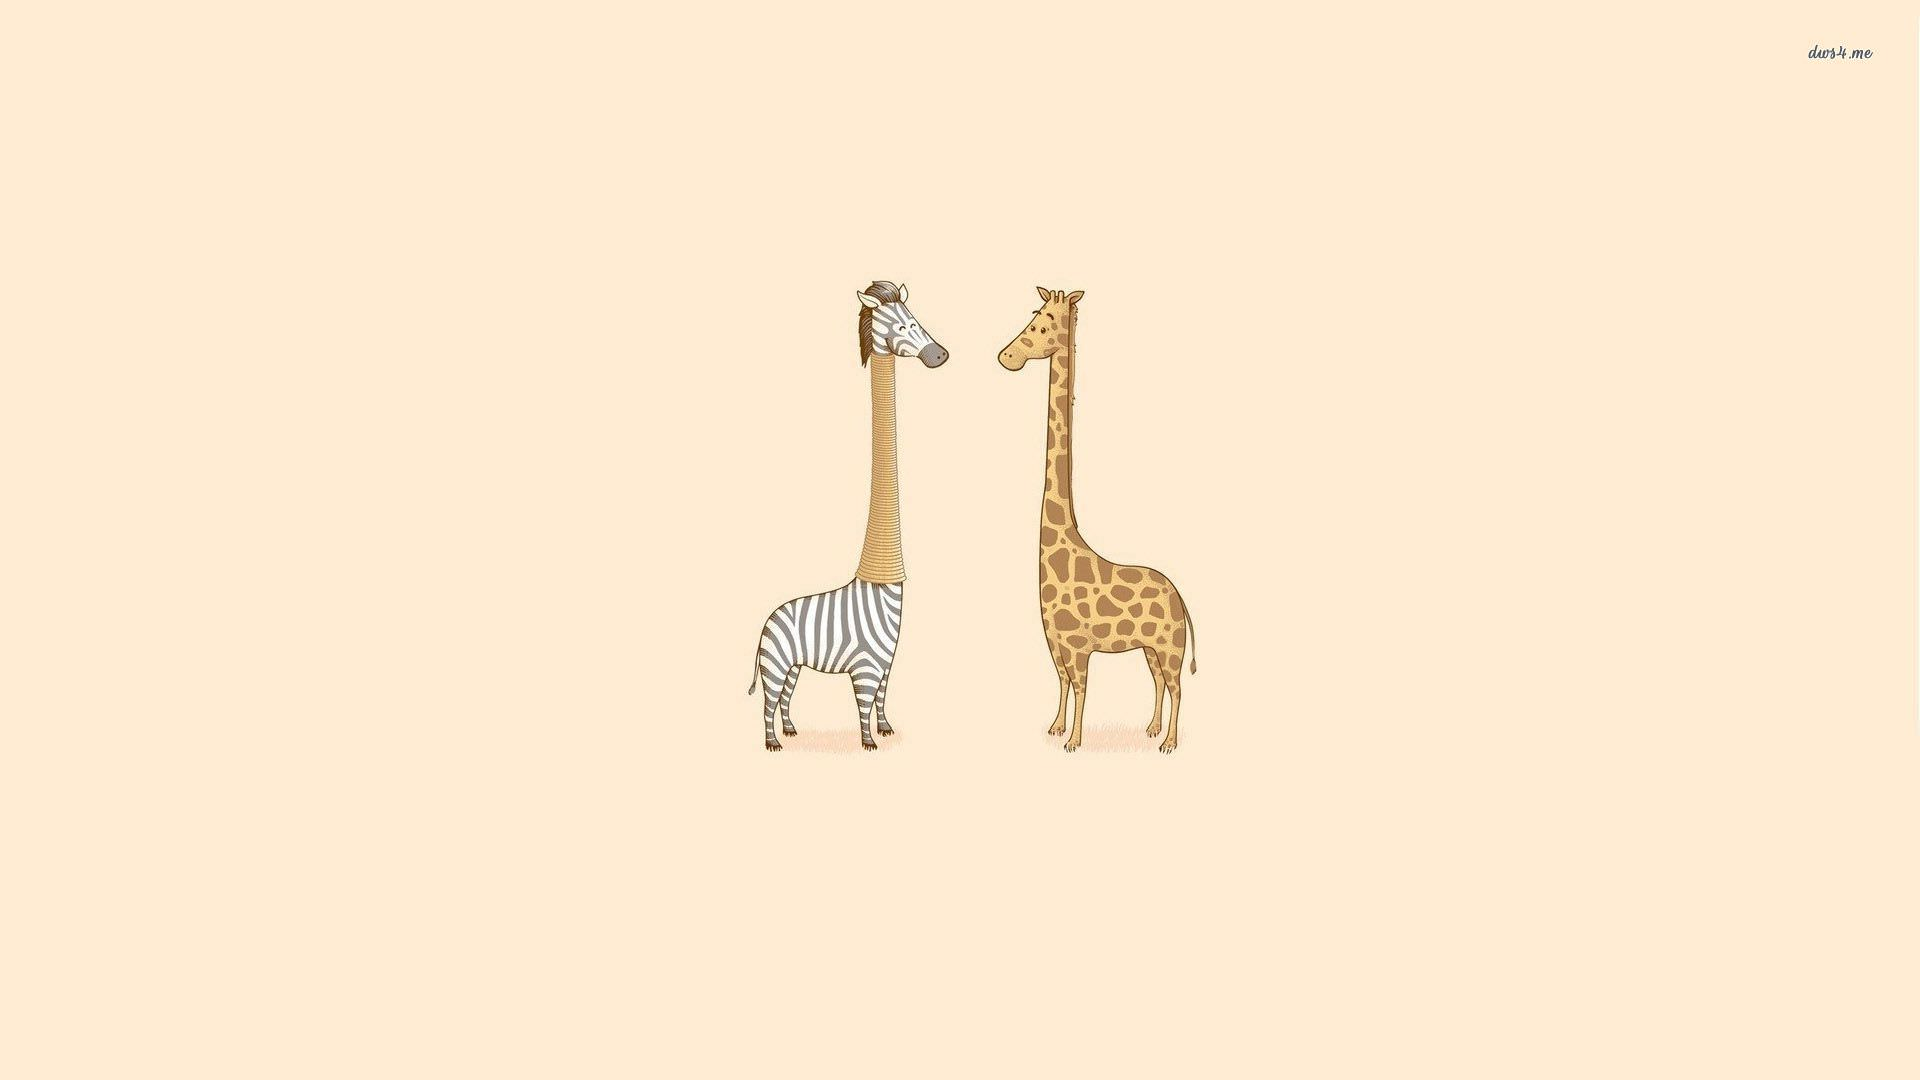 Cute Giraffe Wallpapers 1080p - Excitelt com